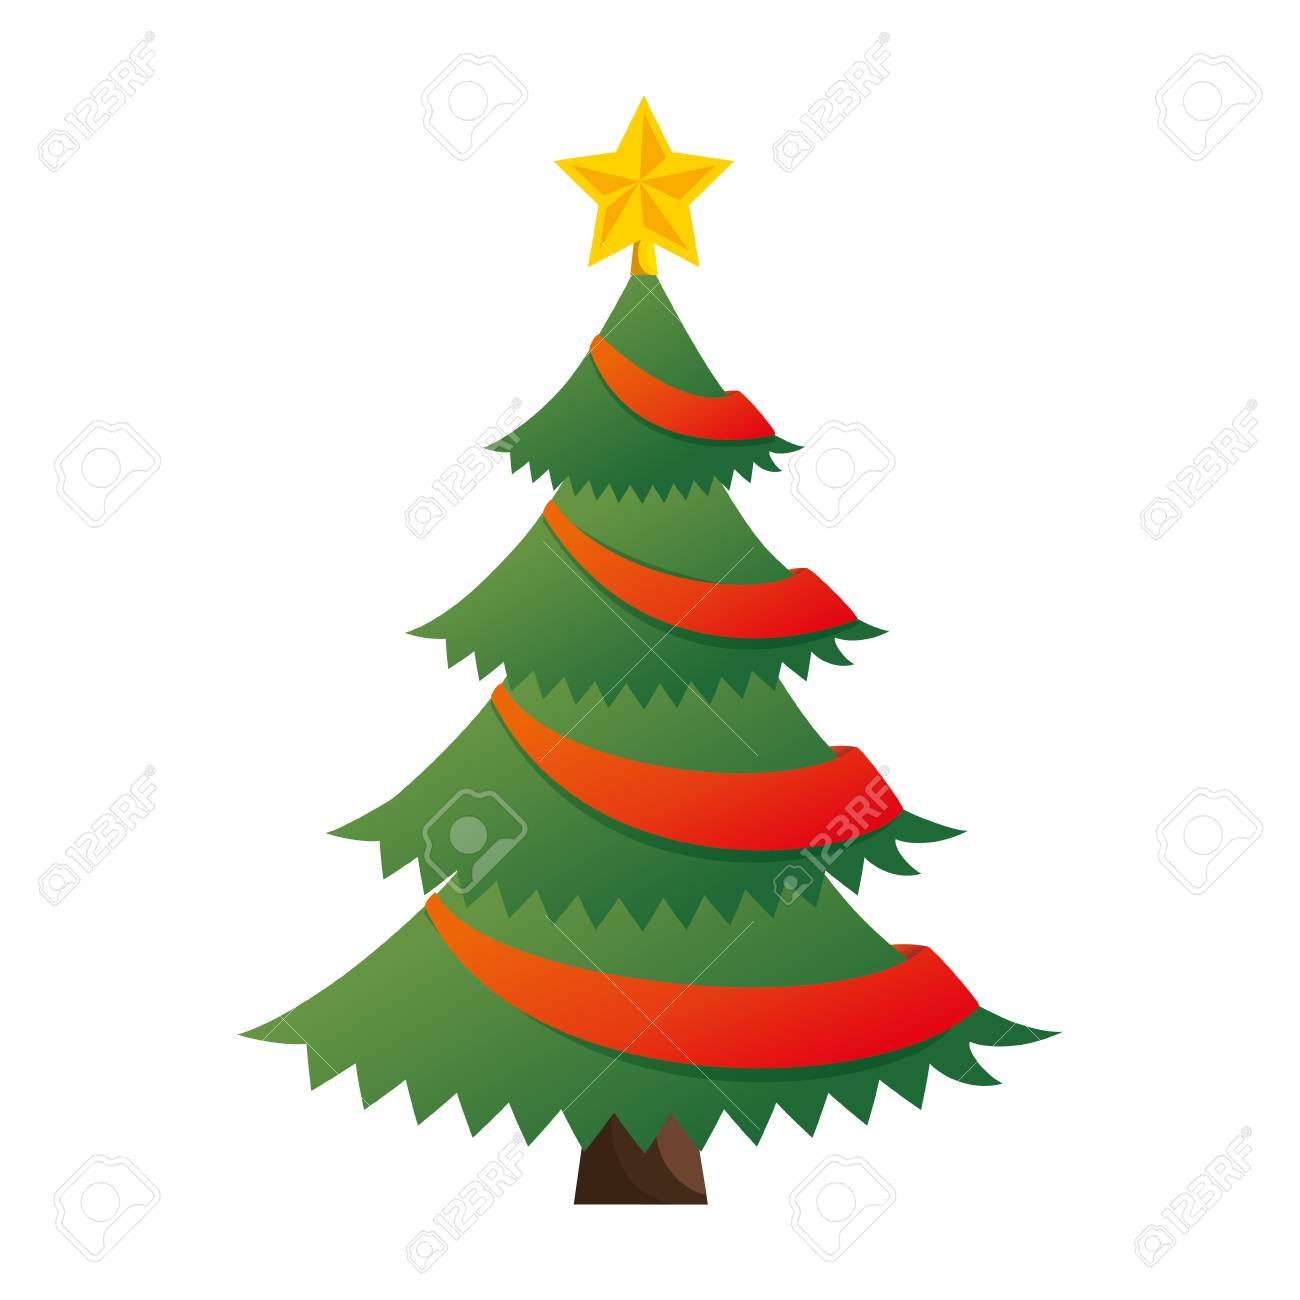 Merry Christmas Tree With Star Illustration Design Royalty Free